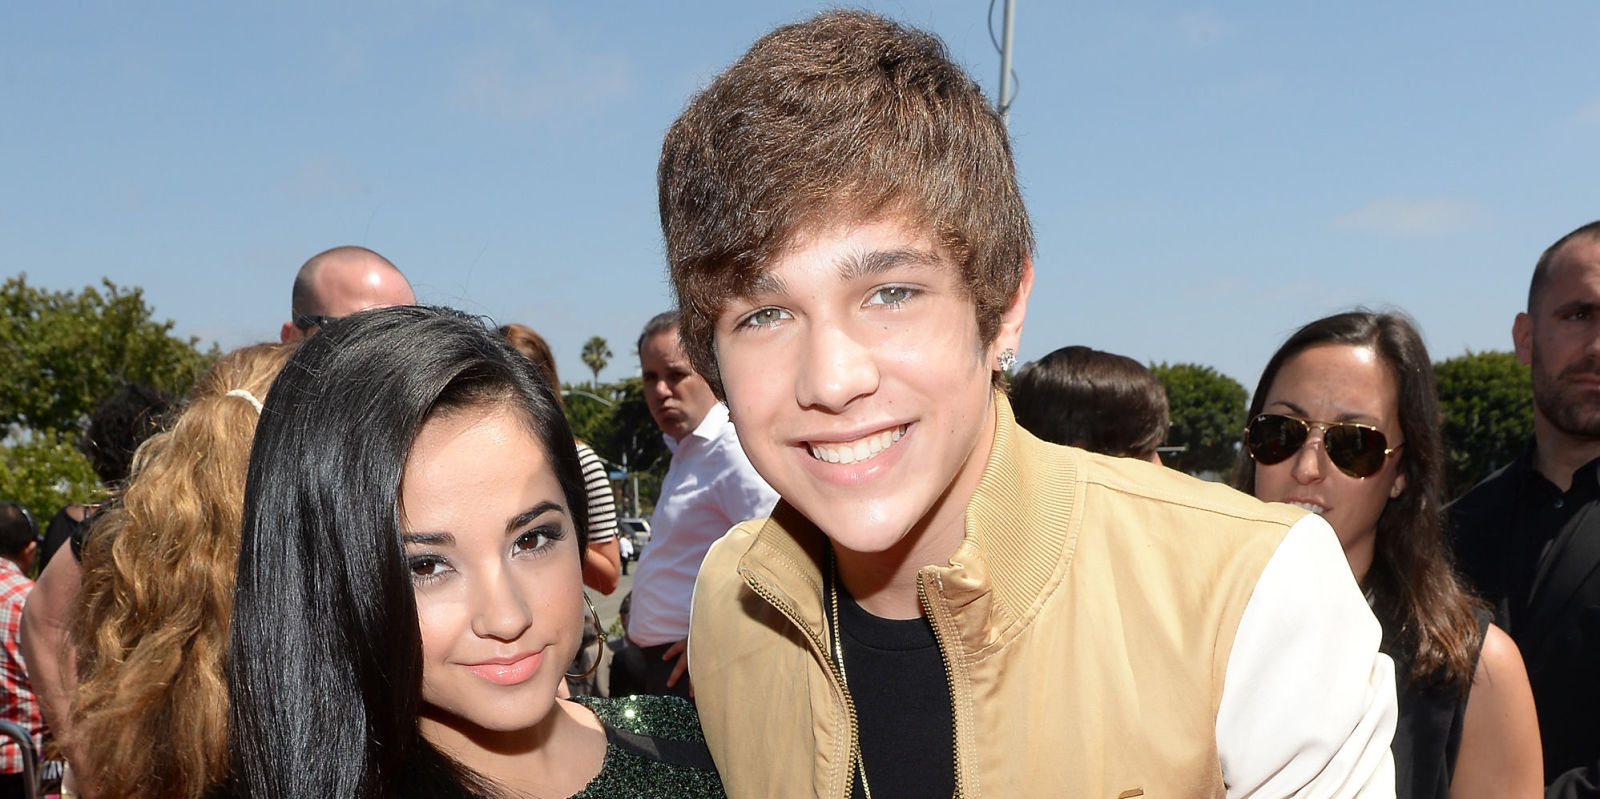 Is austin and becky dating